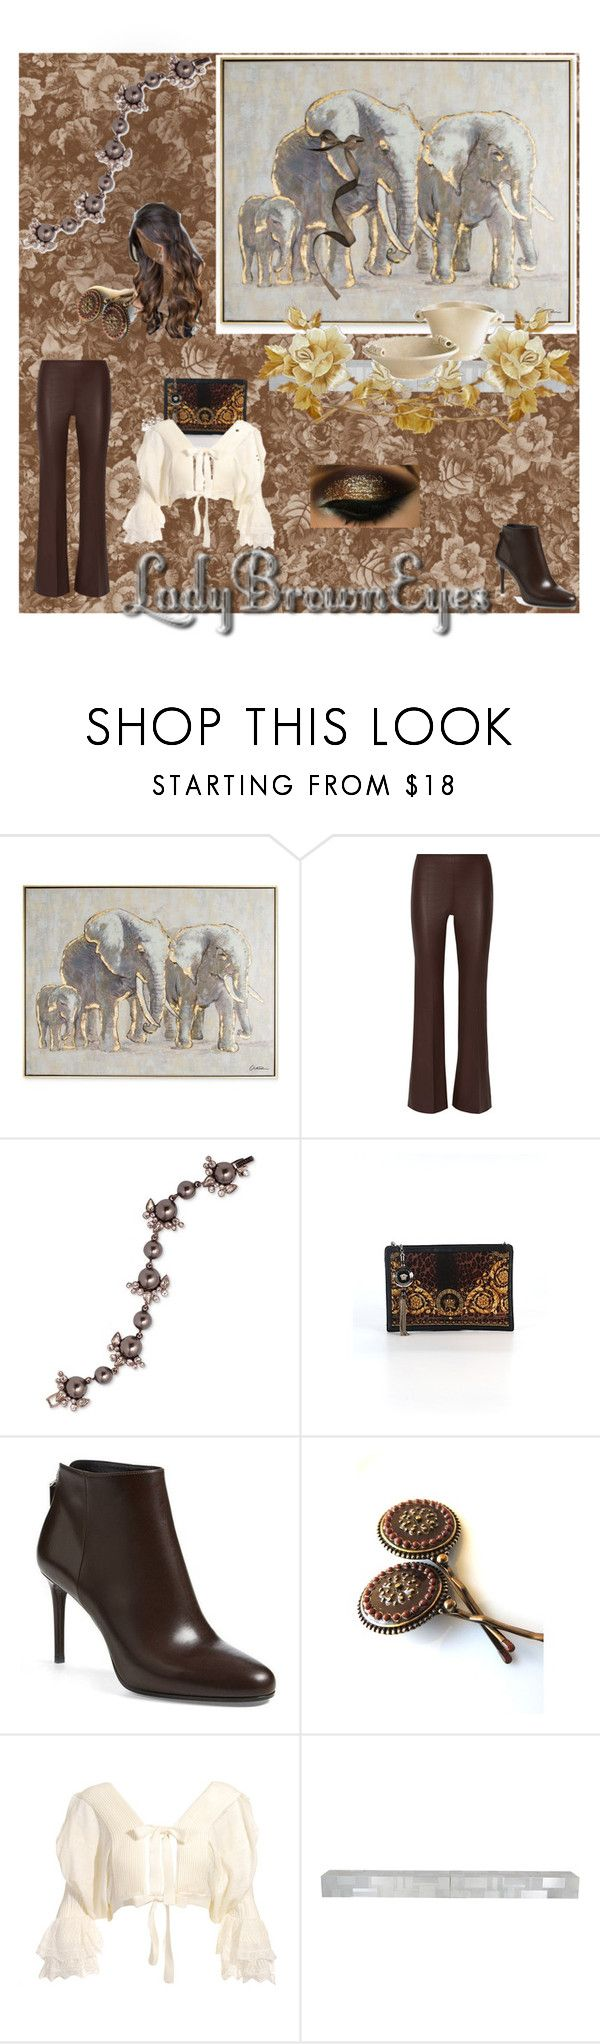 """""""Lady Brown Eyes"""" by adoreluna ❤ liked on Polyvore featuring Graham & Brown, By Malene Birger, Givenchy, Versace, Paul Mitchell, Prada, Sara Attali, Paul Evans and Pier 1 Imports"""